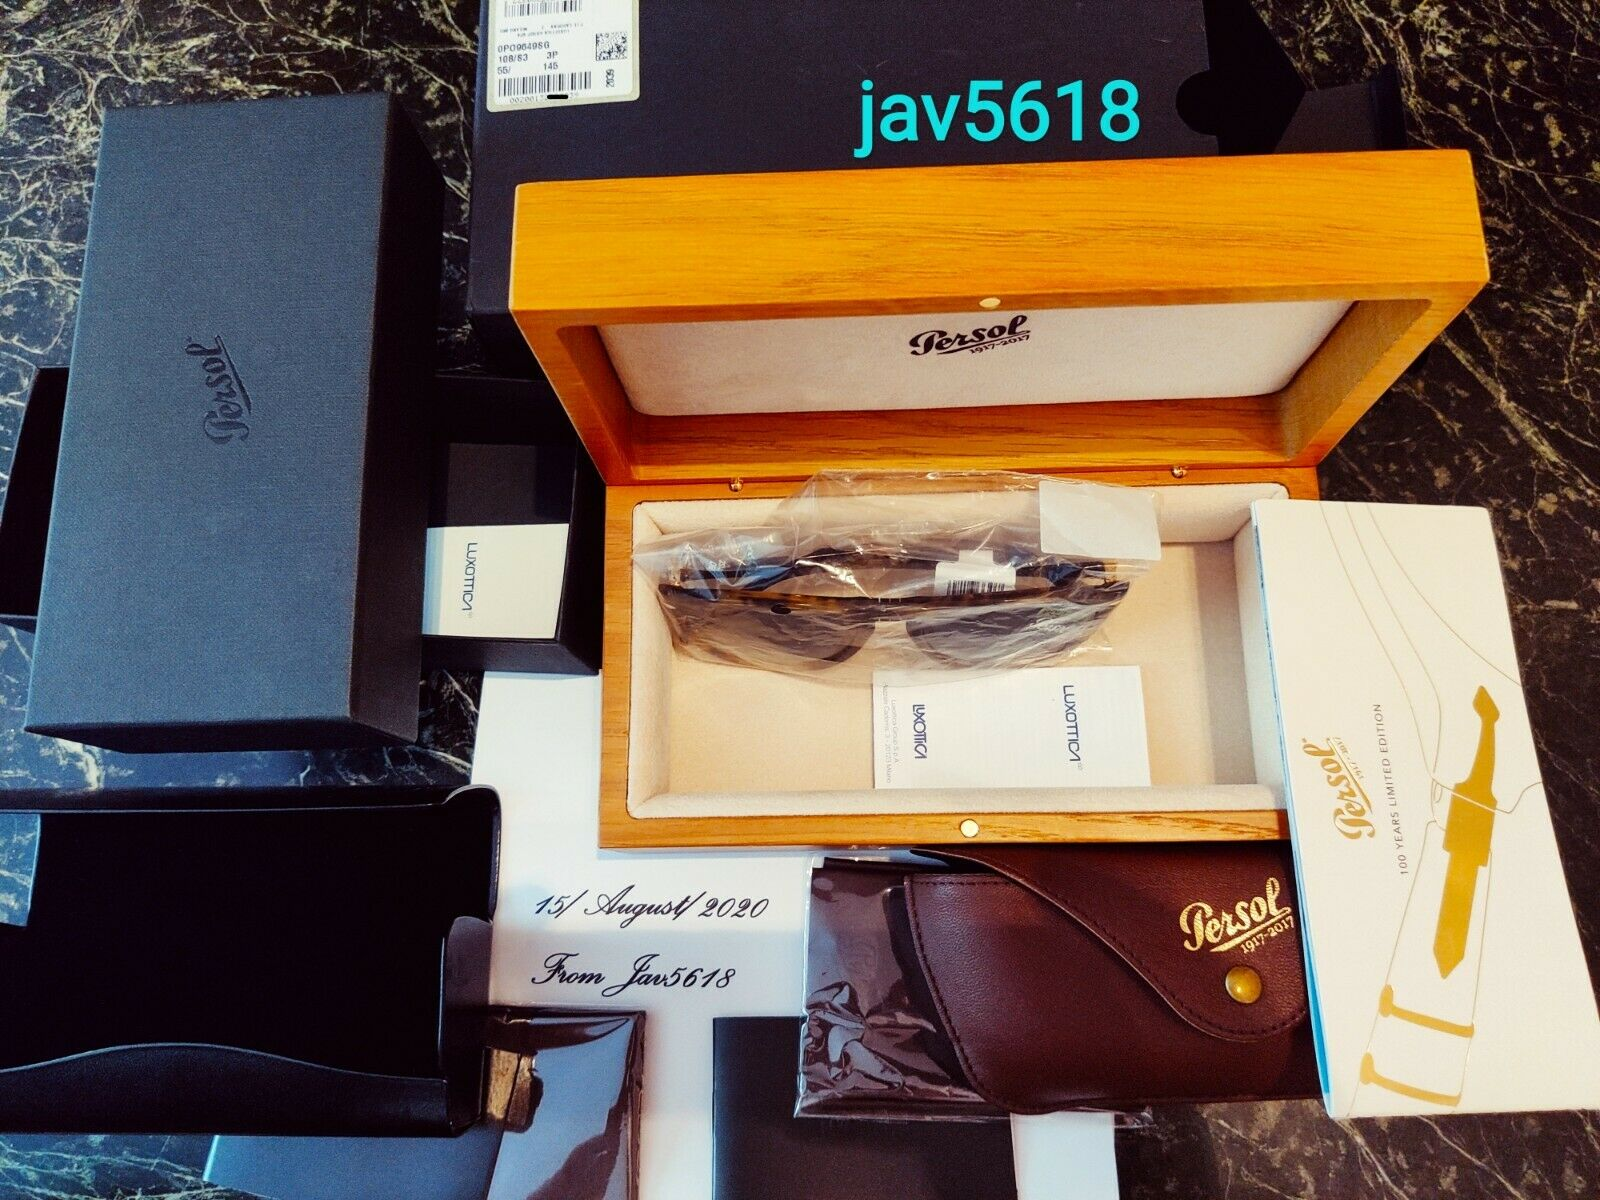 PERSOL SUNGLASSES 9649SG SOLID GOLD 18ktLIMITED 200 RARESTMASTERPIECE, NEW**